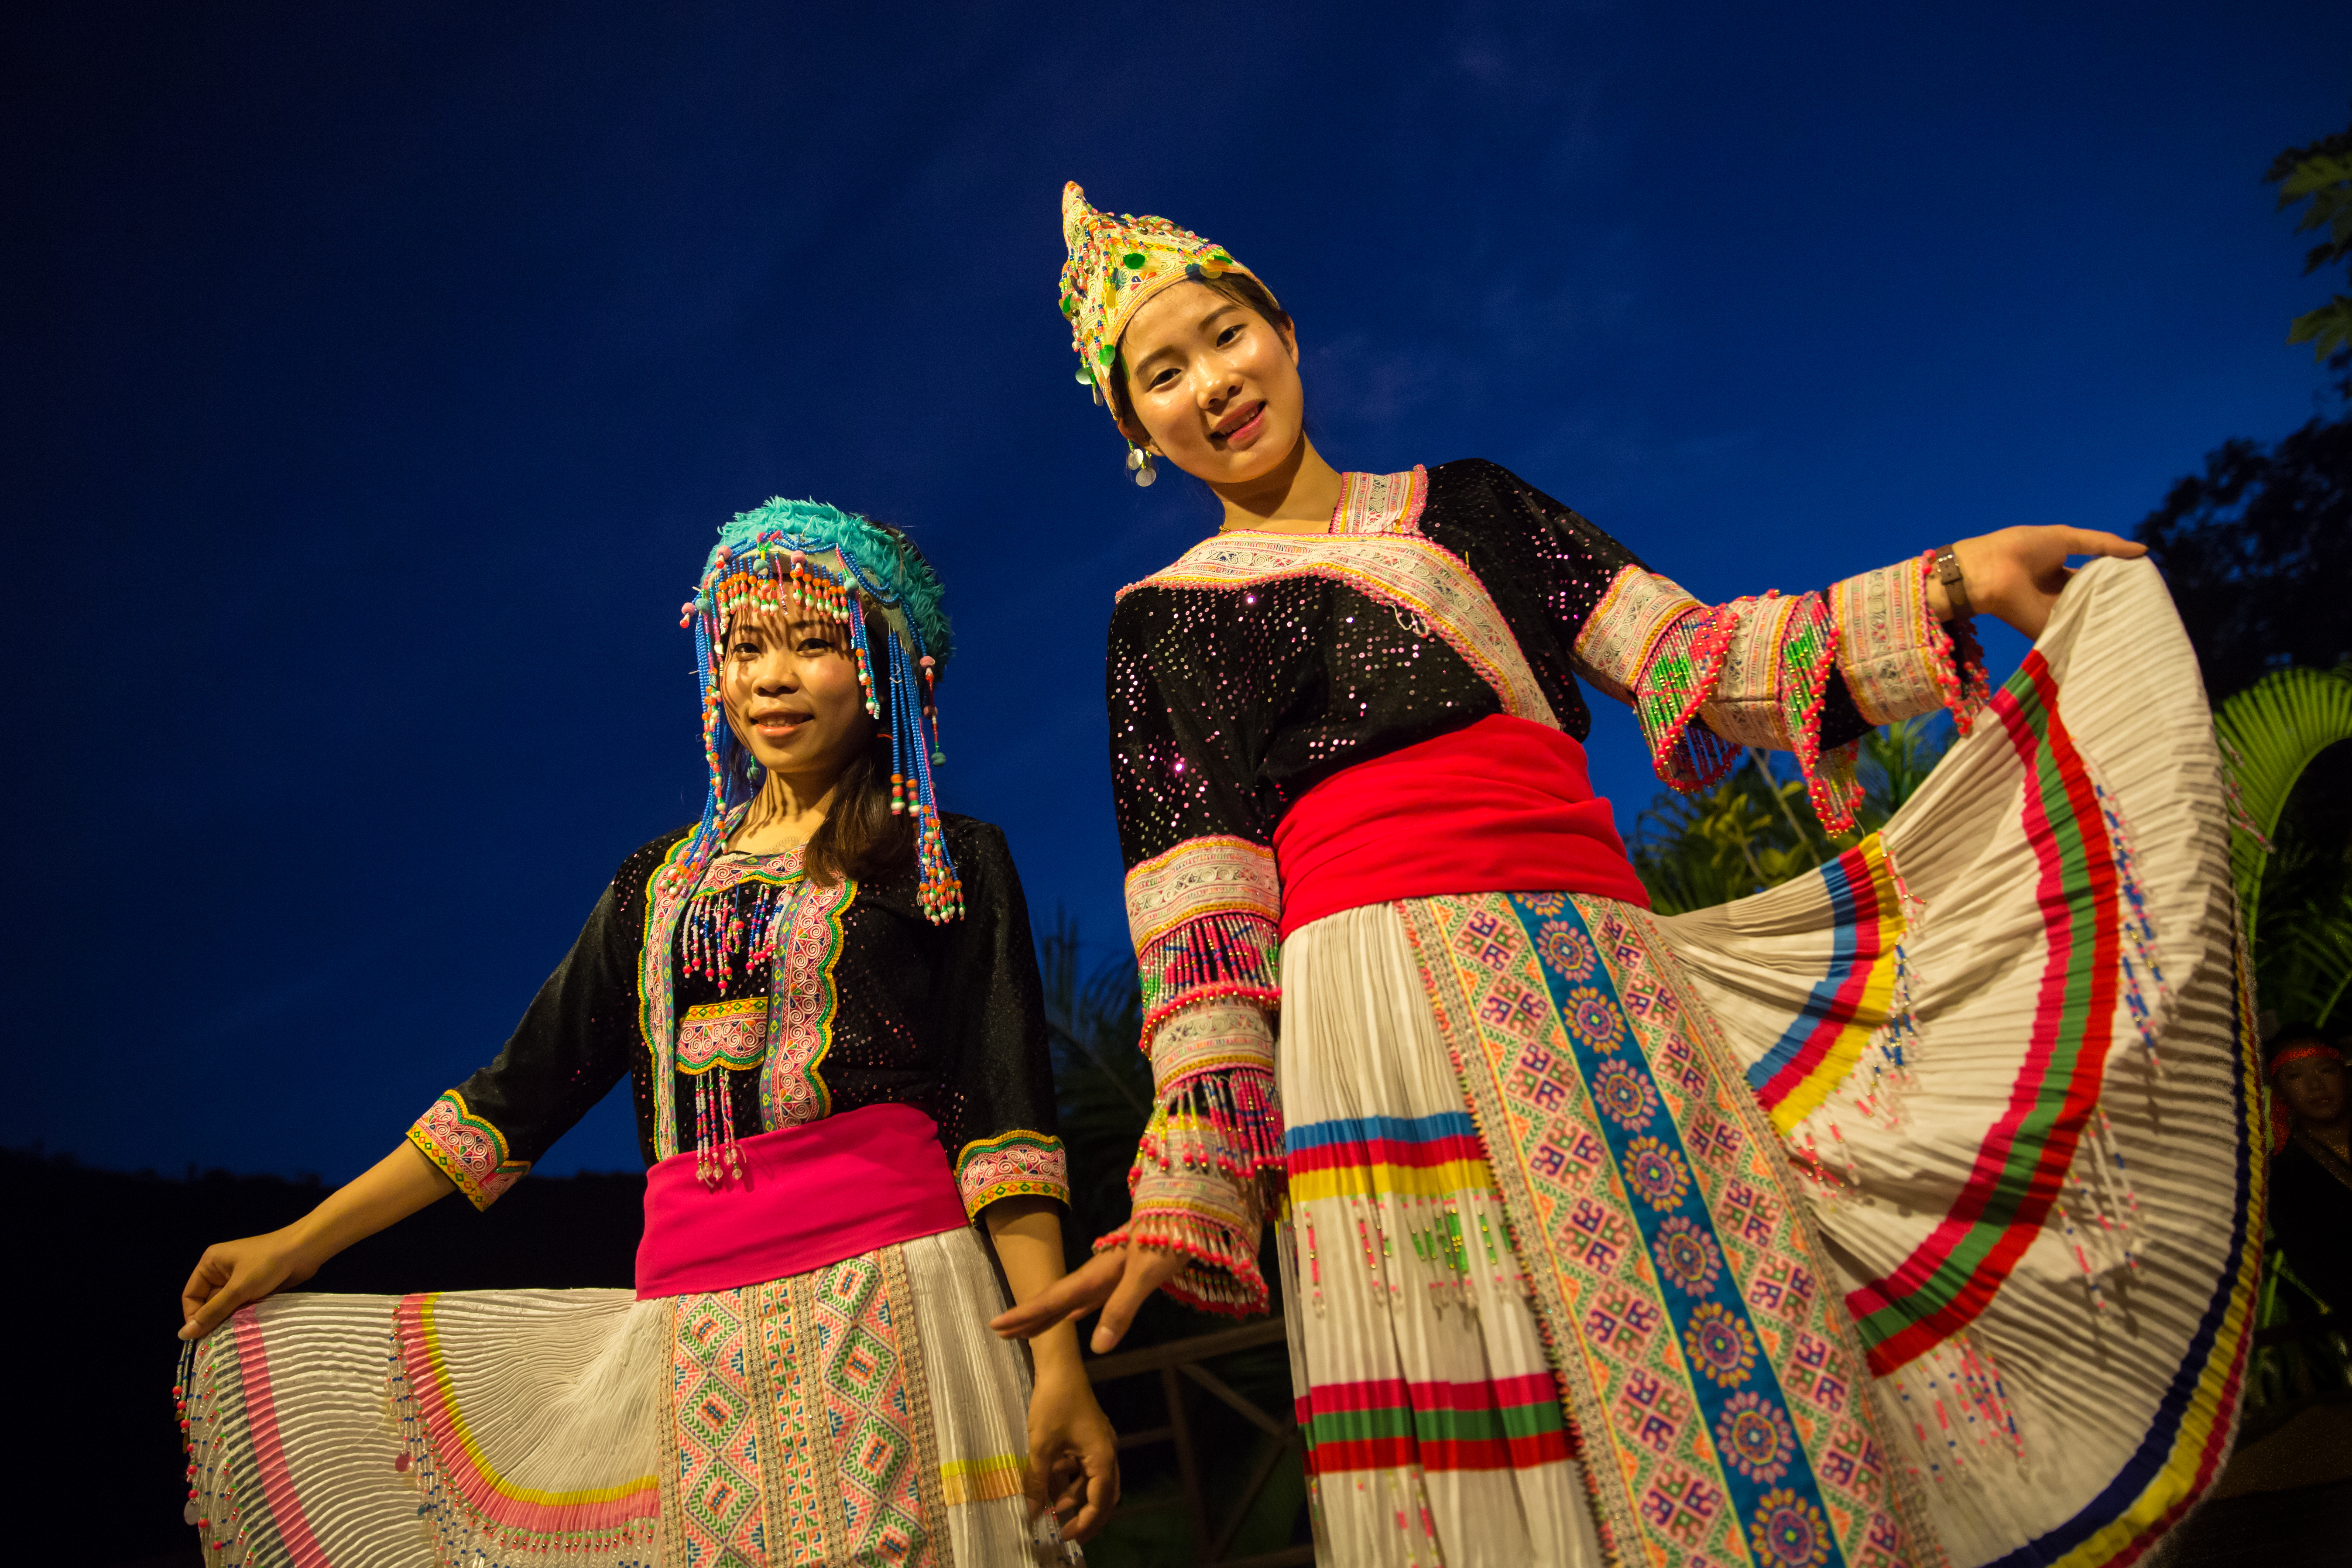 Traditional Lao dancers at the Luang Say Lodge, a luxury accommodation on the banks of the Mekong River, Pakbeng, Laos